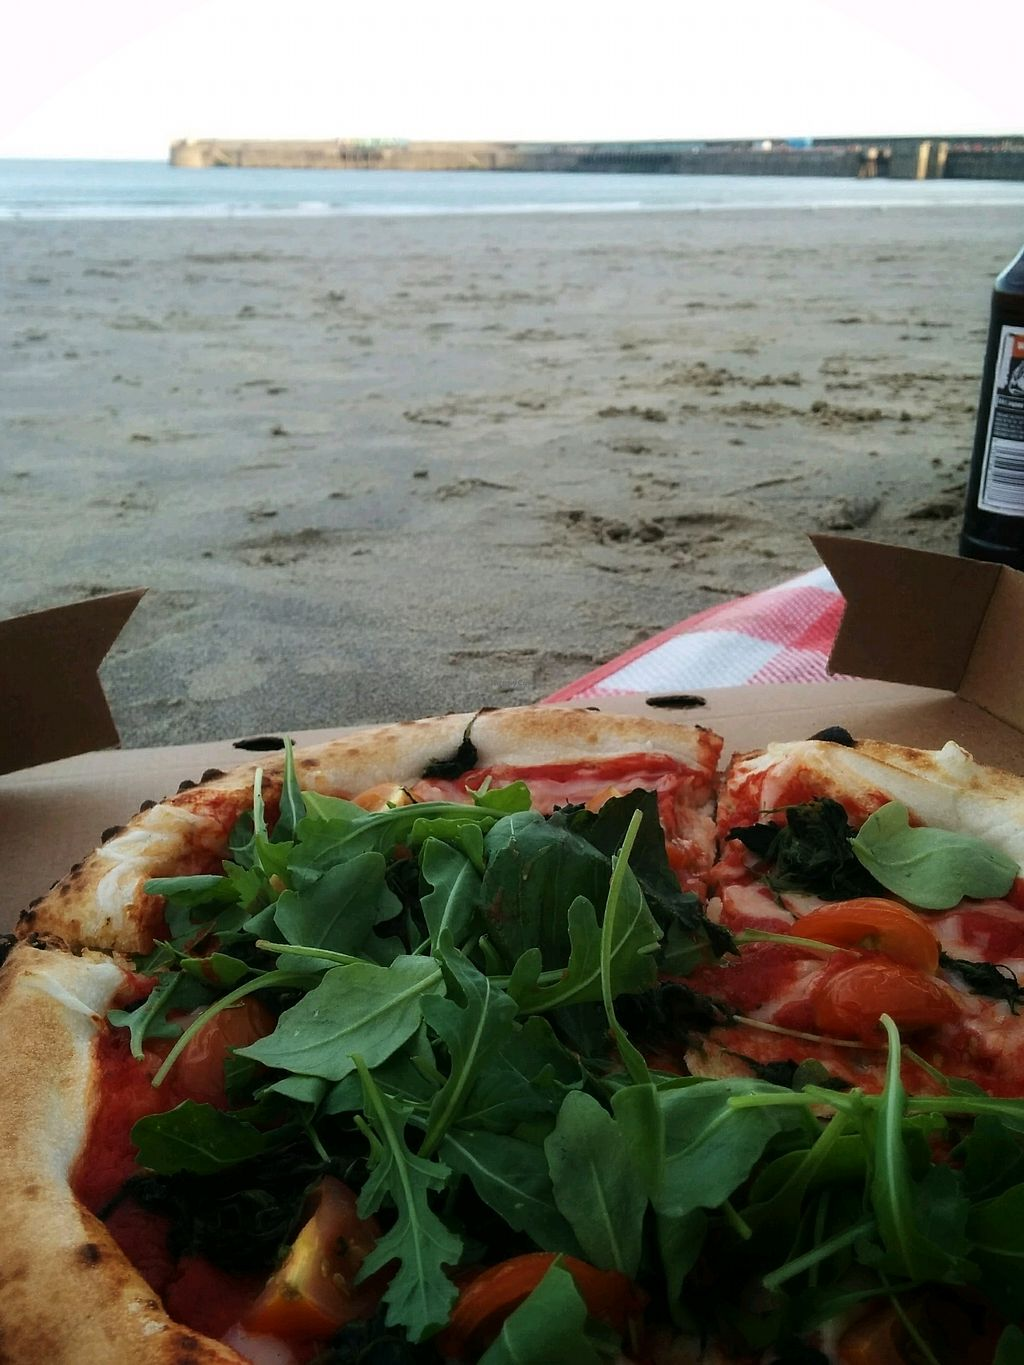 """Photo of Lubens Pizza  by <a href=""""/members/profile/Pupnik"""">Pupnik</a> <br/>Vegan cheese margarita with added rocket <br/> November 16, 2017  - <a href='/contact/abuse/image/105309/326290'>Report</a>"""